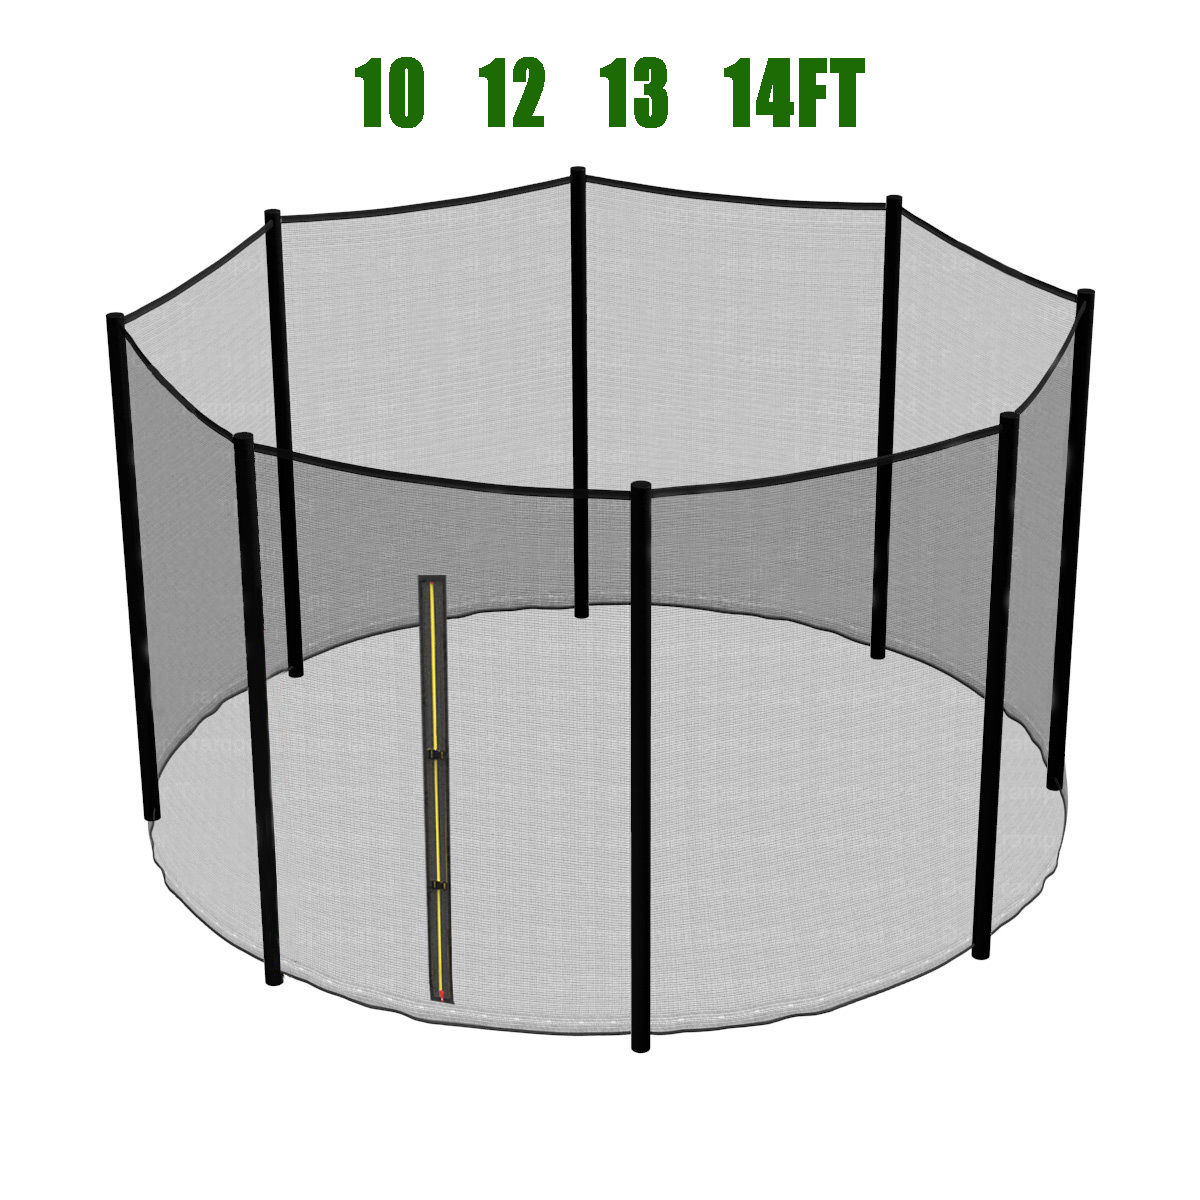 6 8 10 12 13 14 Ft Trampoline Replacement Pad Safety Net